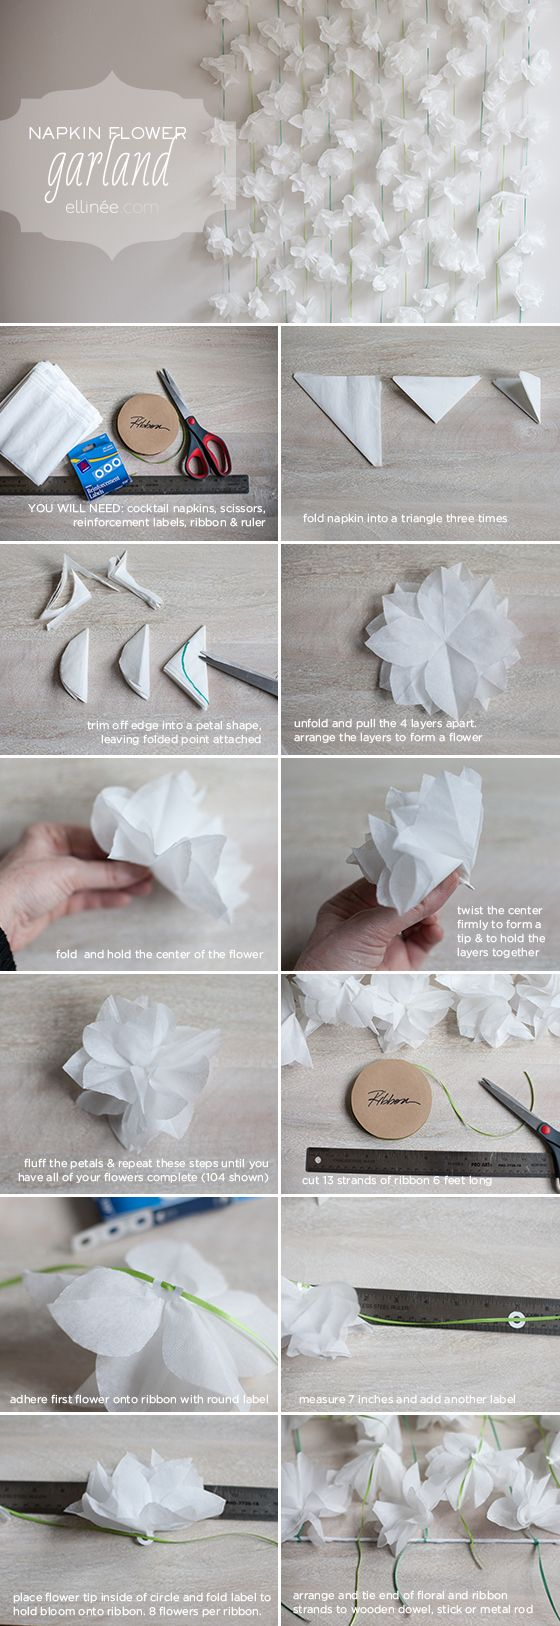 Napkin Flower Garland Tutorial http://www.elli.com/blog/diy-paper-napkin-flower-garland-tutorial/